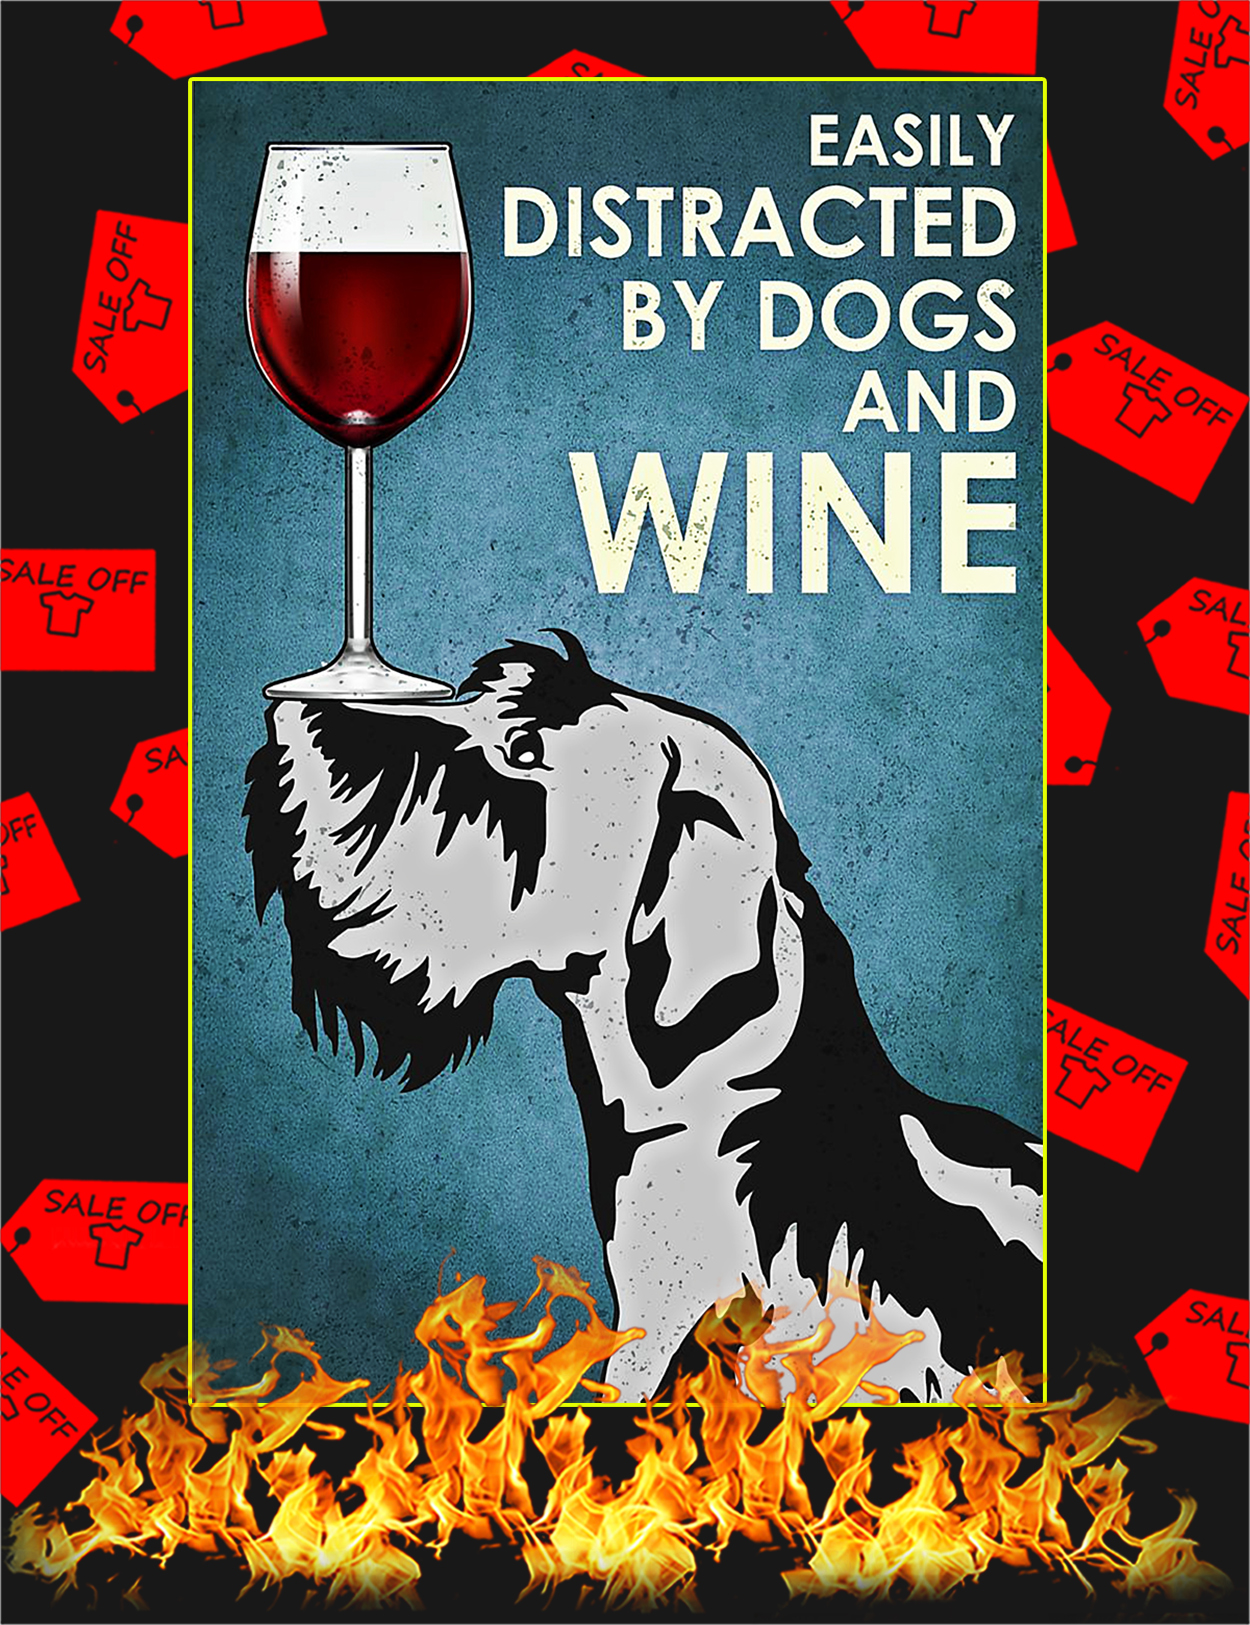 Easily distracted by Scottish terrier dogs and wine poster - A2